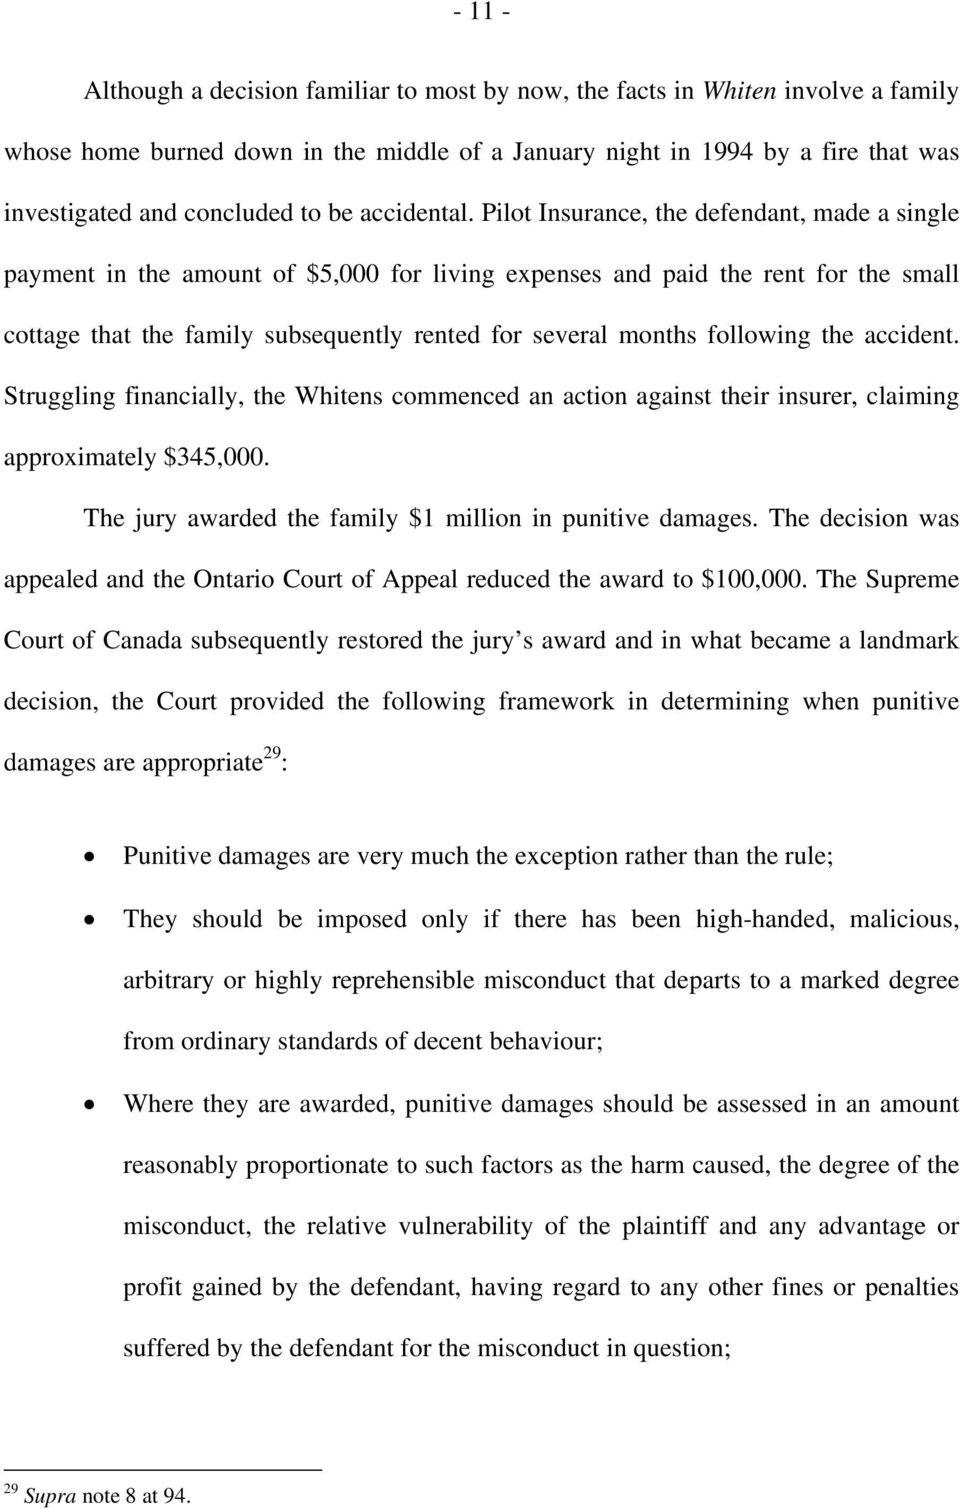 Pilot Insurance, the defendant, made a single payment in the amount of $5,000 for living expenses and paid the rent for the small cottage that the family subsequently rented for several months